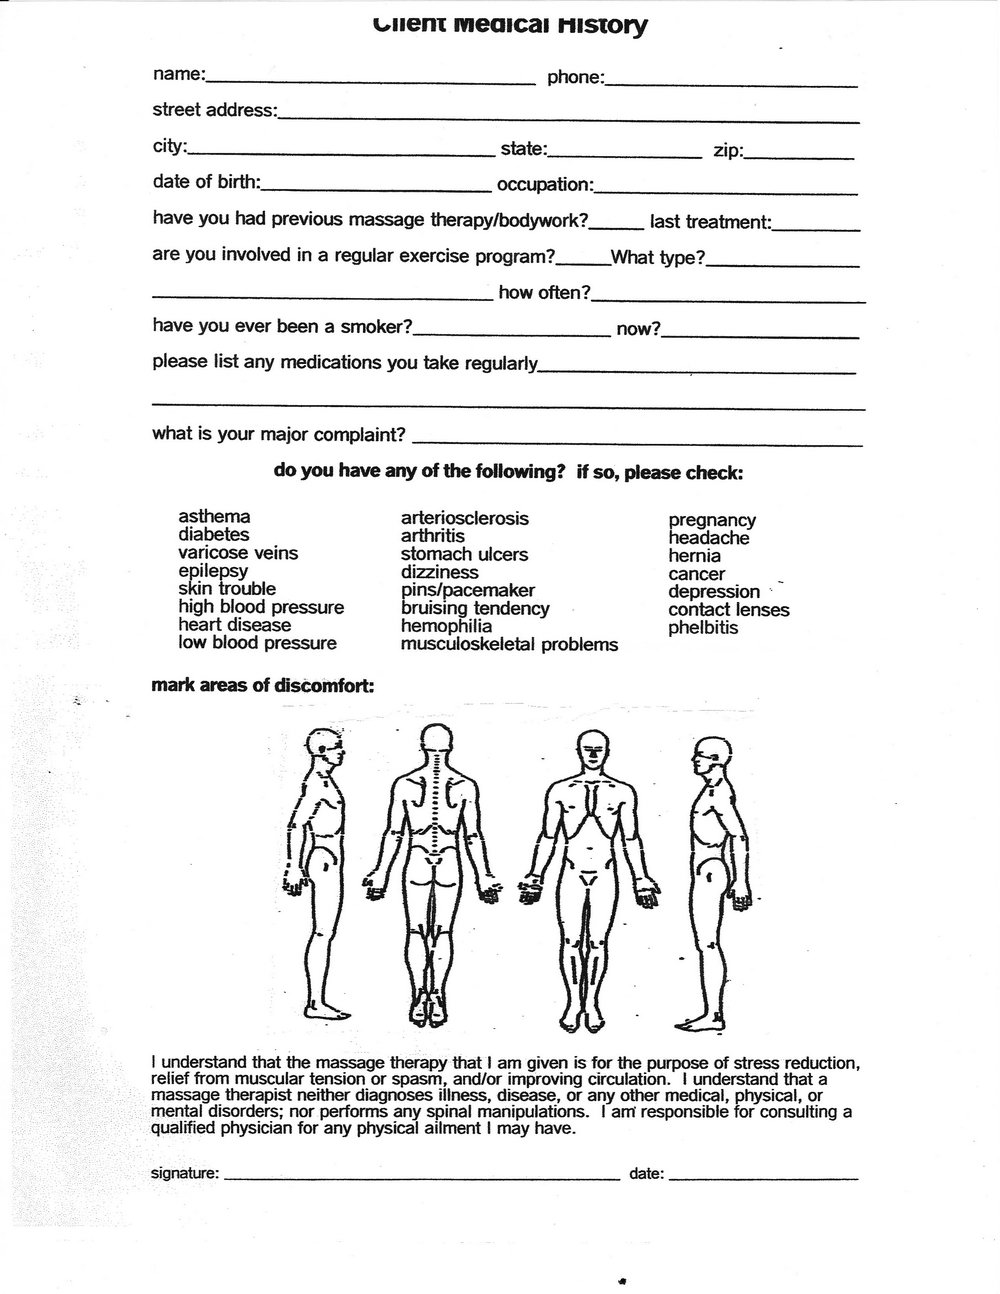 Massage Therapy Client Intake Form Template